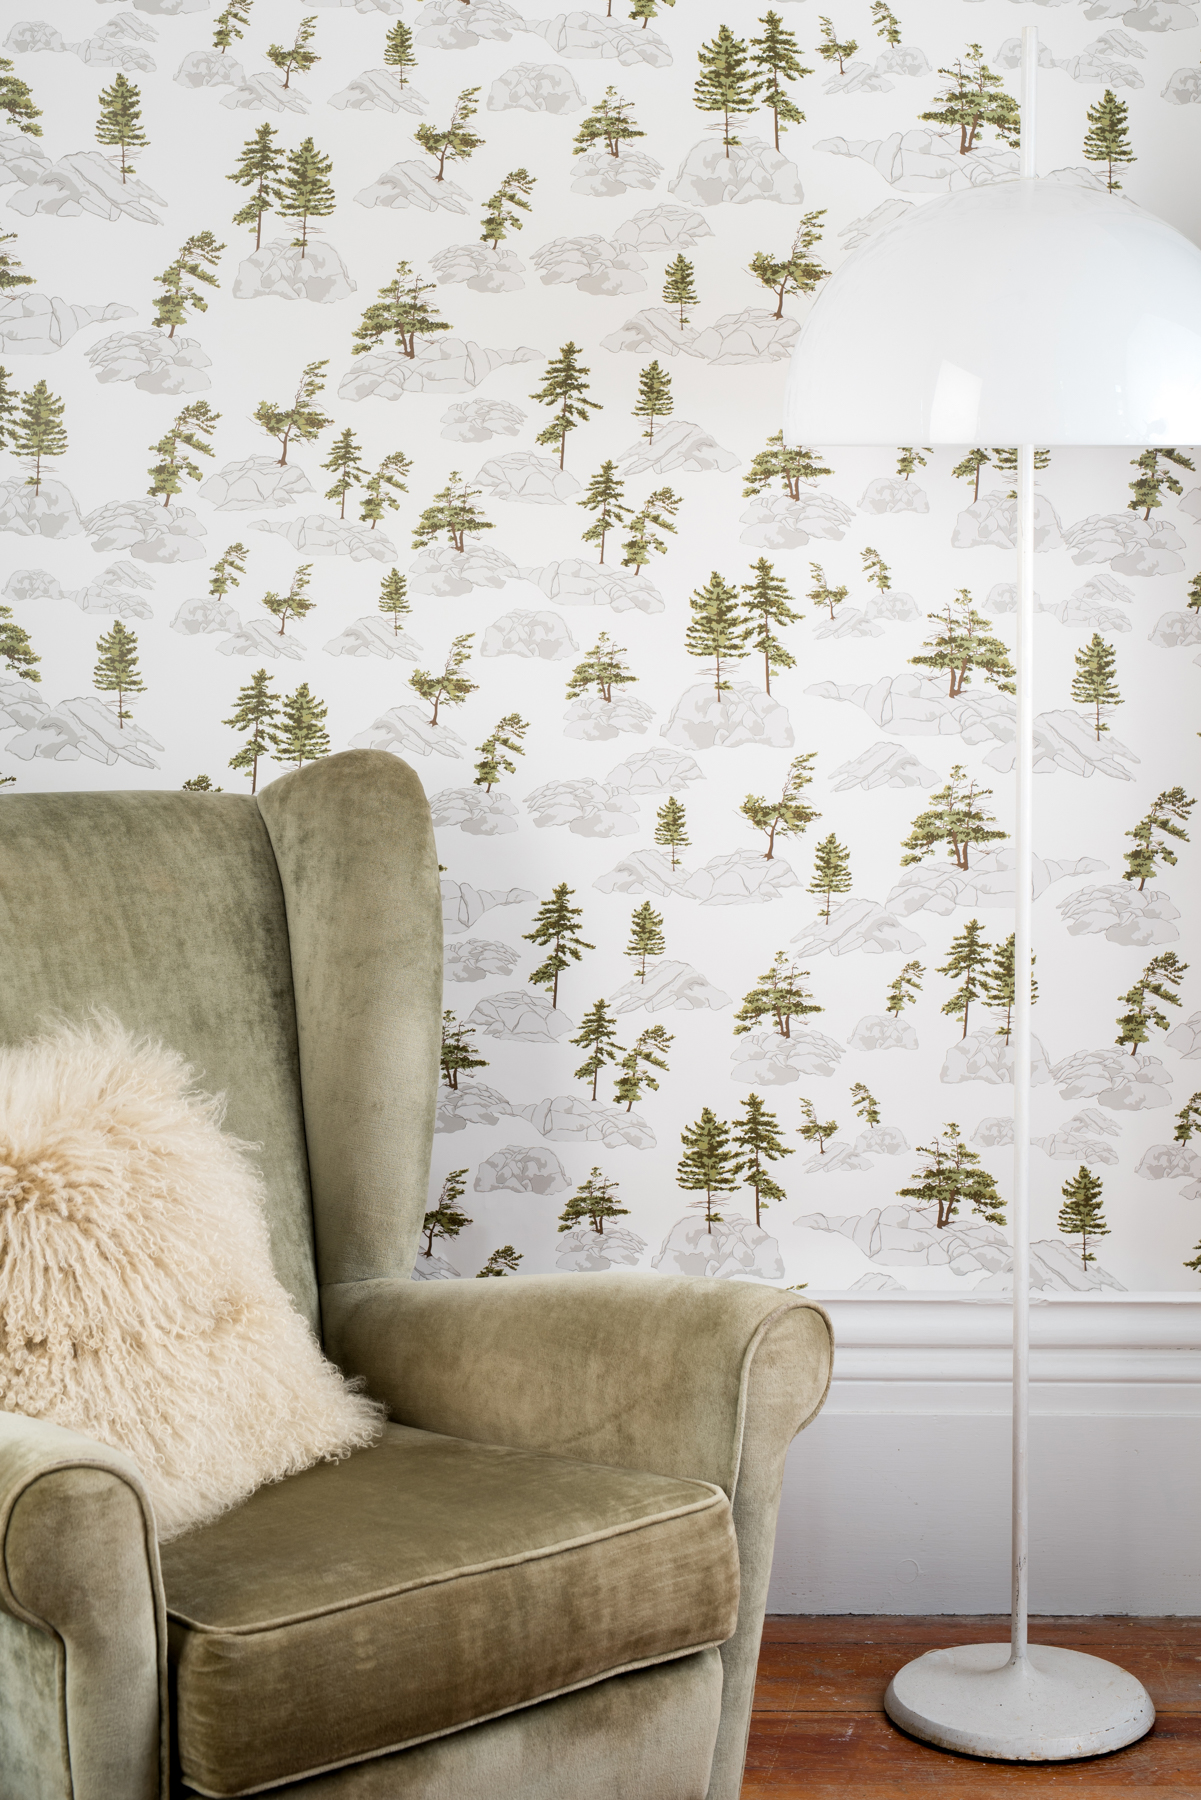 Kate Golding Canadian Shield wallpaper // Modern wallcoverings and interior decor.